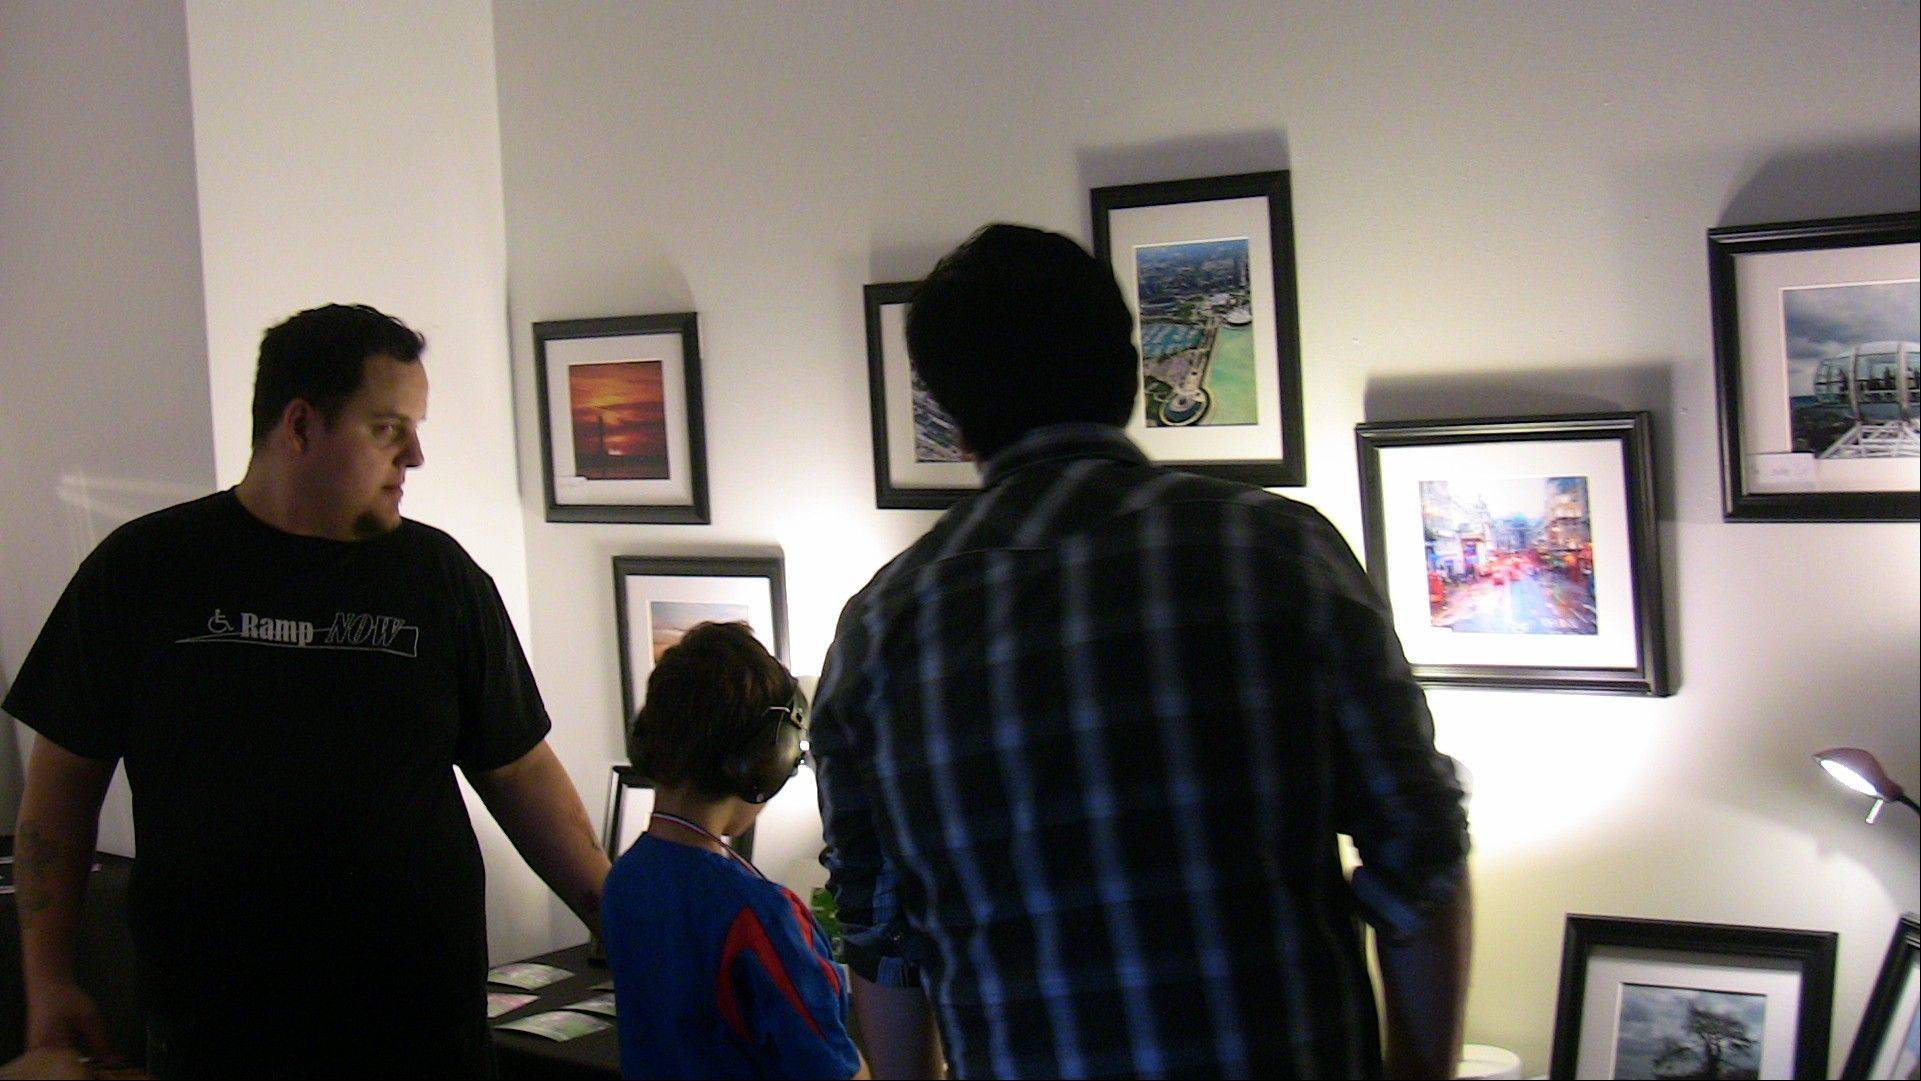 Photographs, paintings and other forms of art will shine at several locations along North Broadway Avenue in downtown Aurora during the eighth Aurora ArtWalk from 7 to 10 p.m. Friday, Oct. 5.